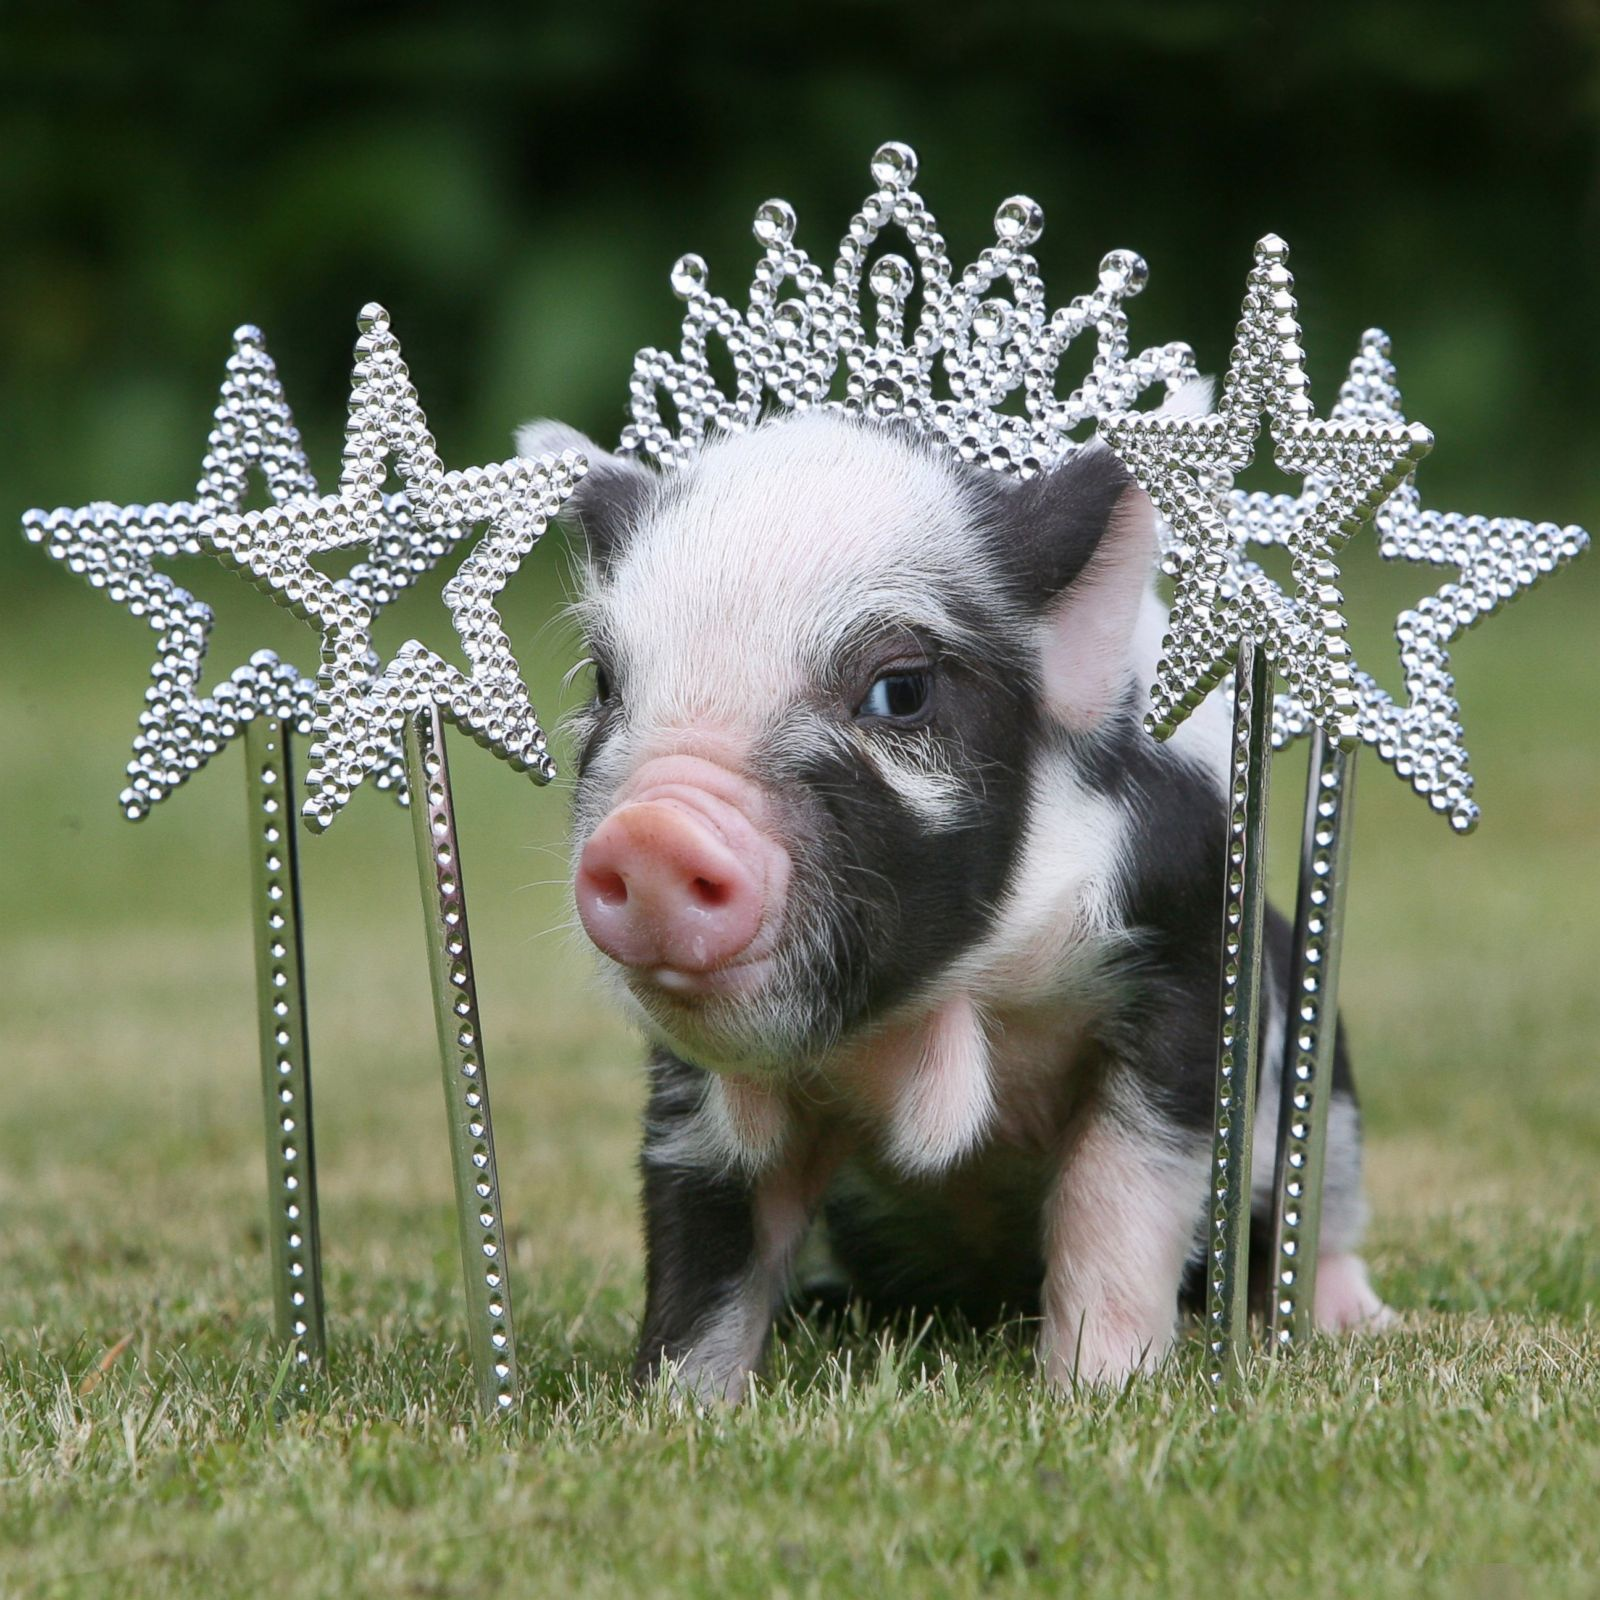 teacup pig i love you baby MEMEs